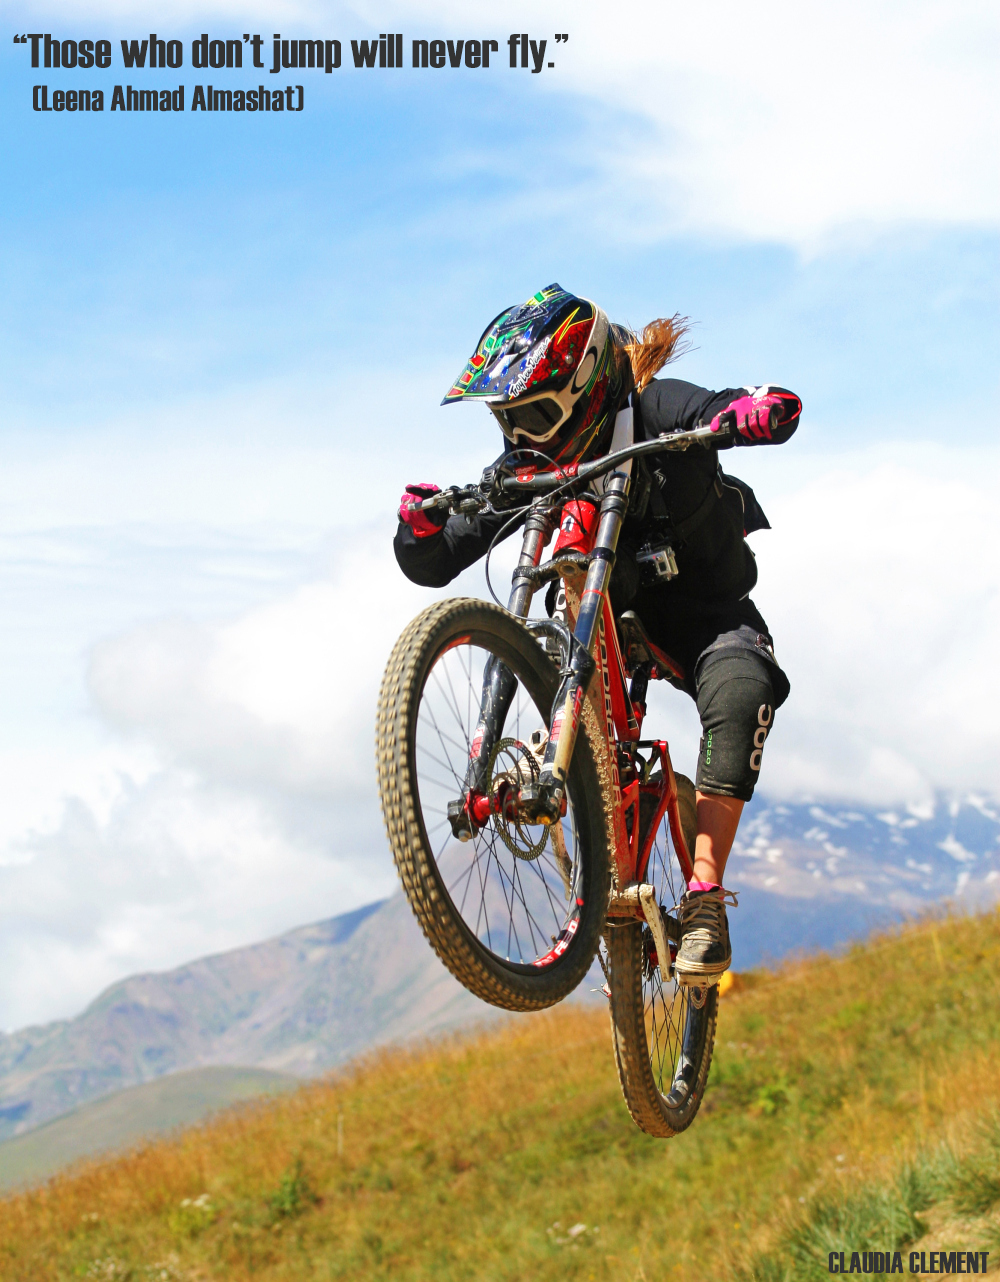 Claudia Clement Downhill Mountain Bike Diable - Les 2 Alpes, MTB, bikepark, bike , mondraker summum